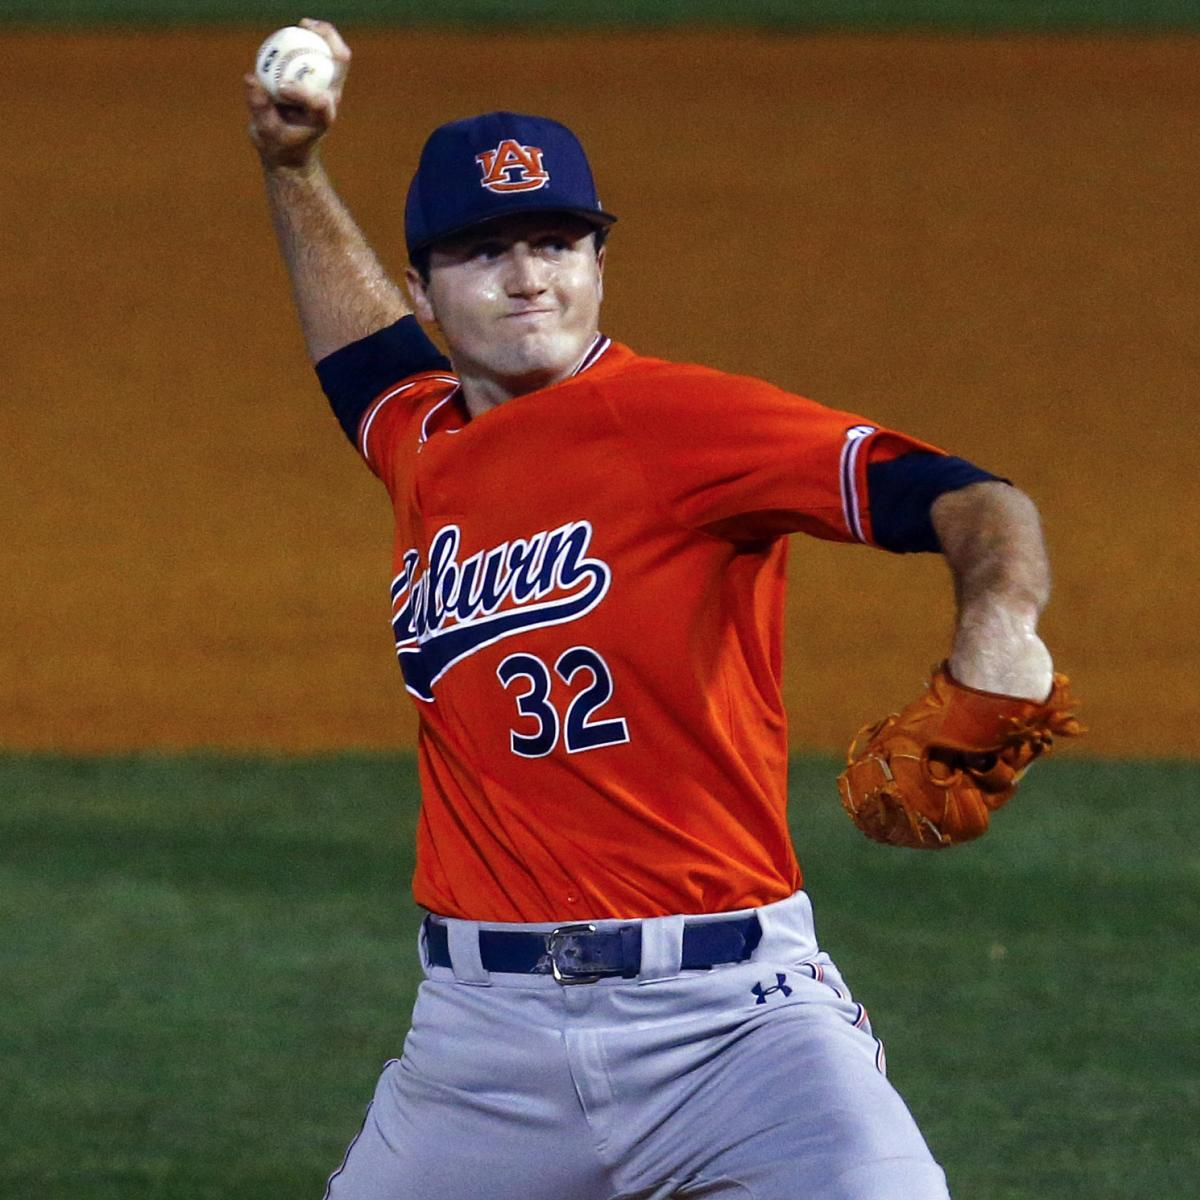 2018 MLB Draft Rumors: Casey Mize Among 3 Prospects Considered by Tigers at 1